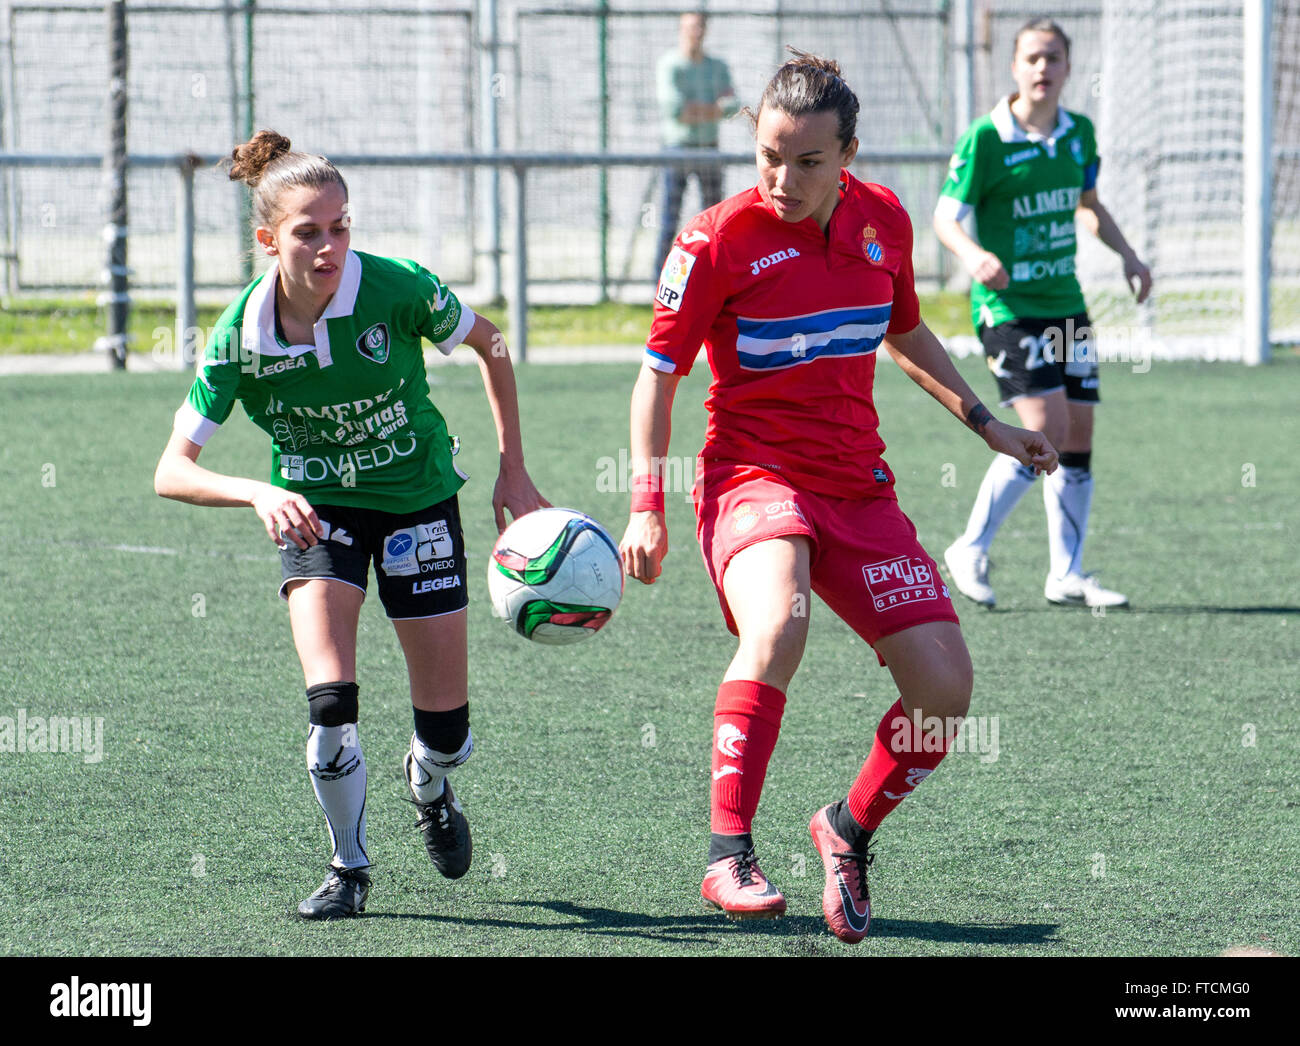 Oviedo, Spain. 27th March, 2016. Anair Lomba (RCD Espanyol) and Yolanda Chamorro (Oviedo Moderno) fight for the - Stock Image